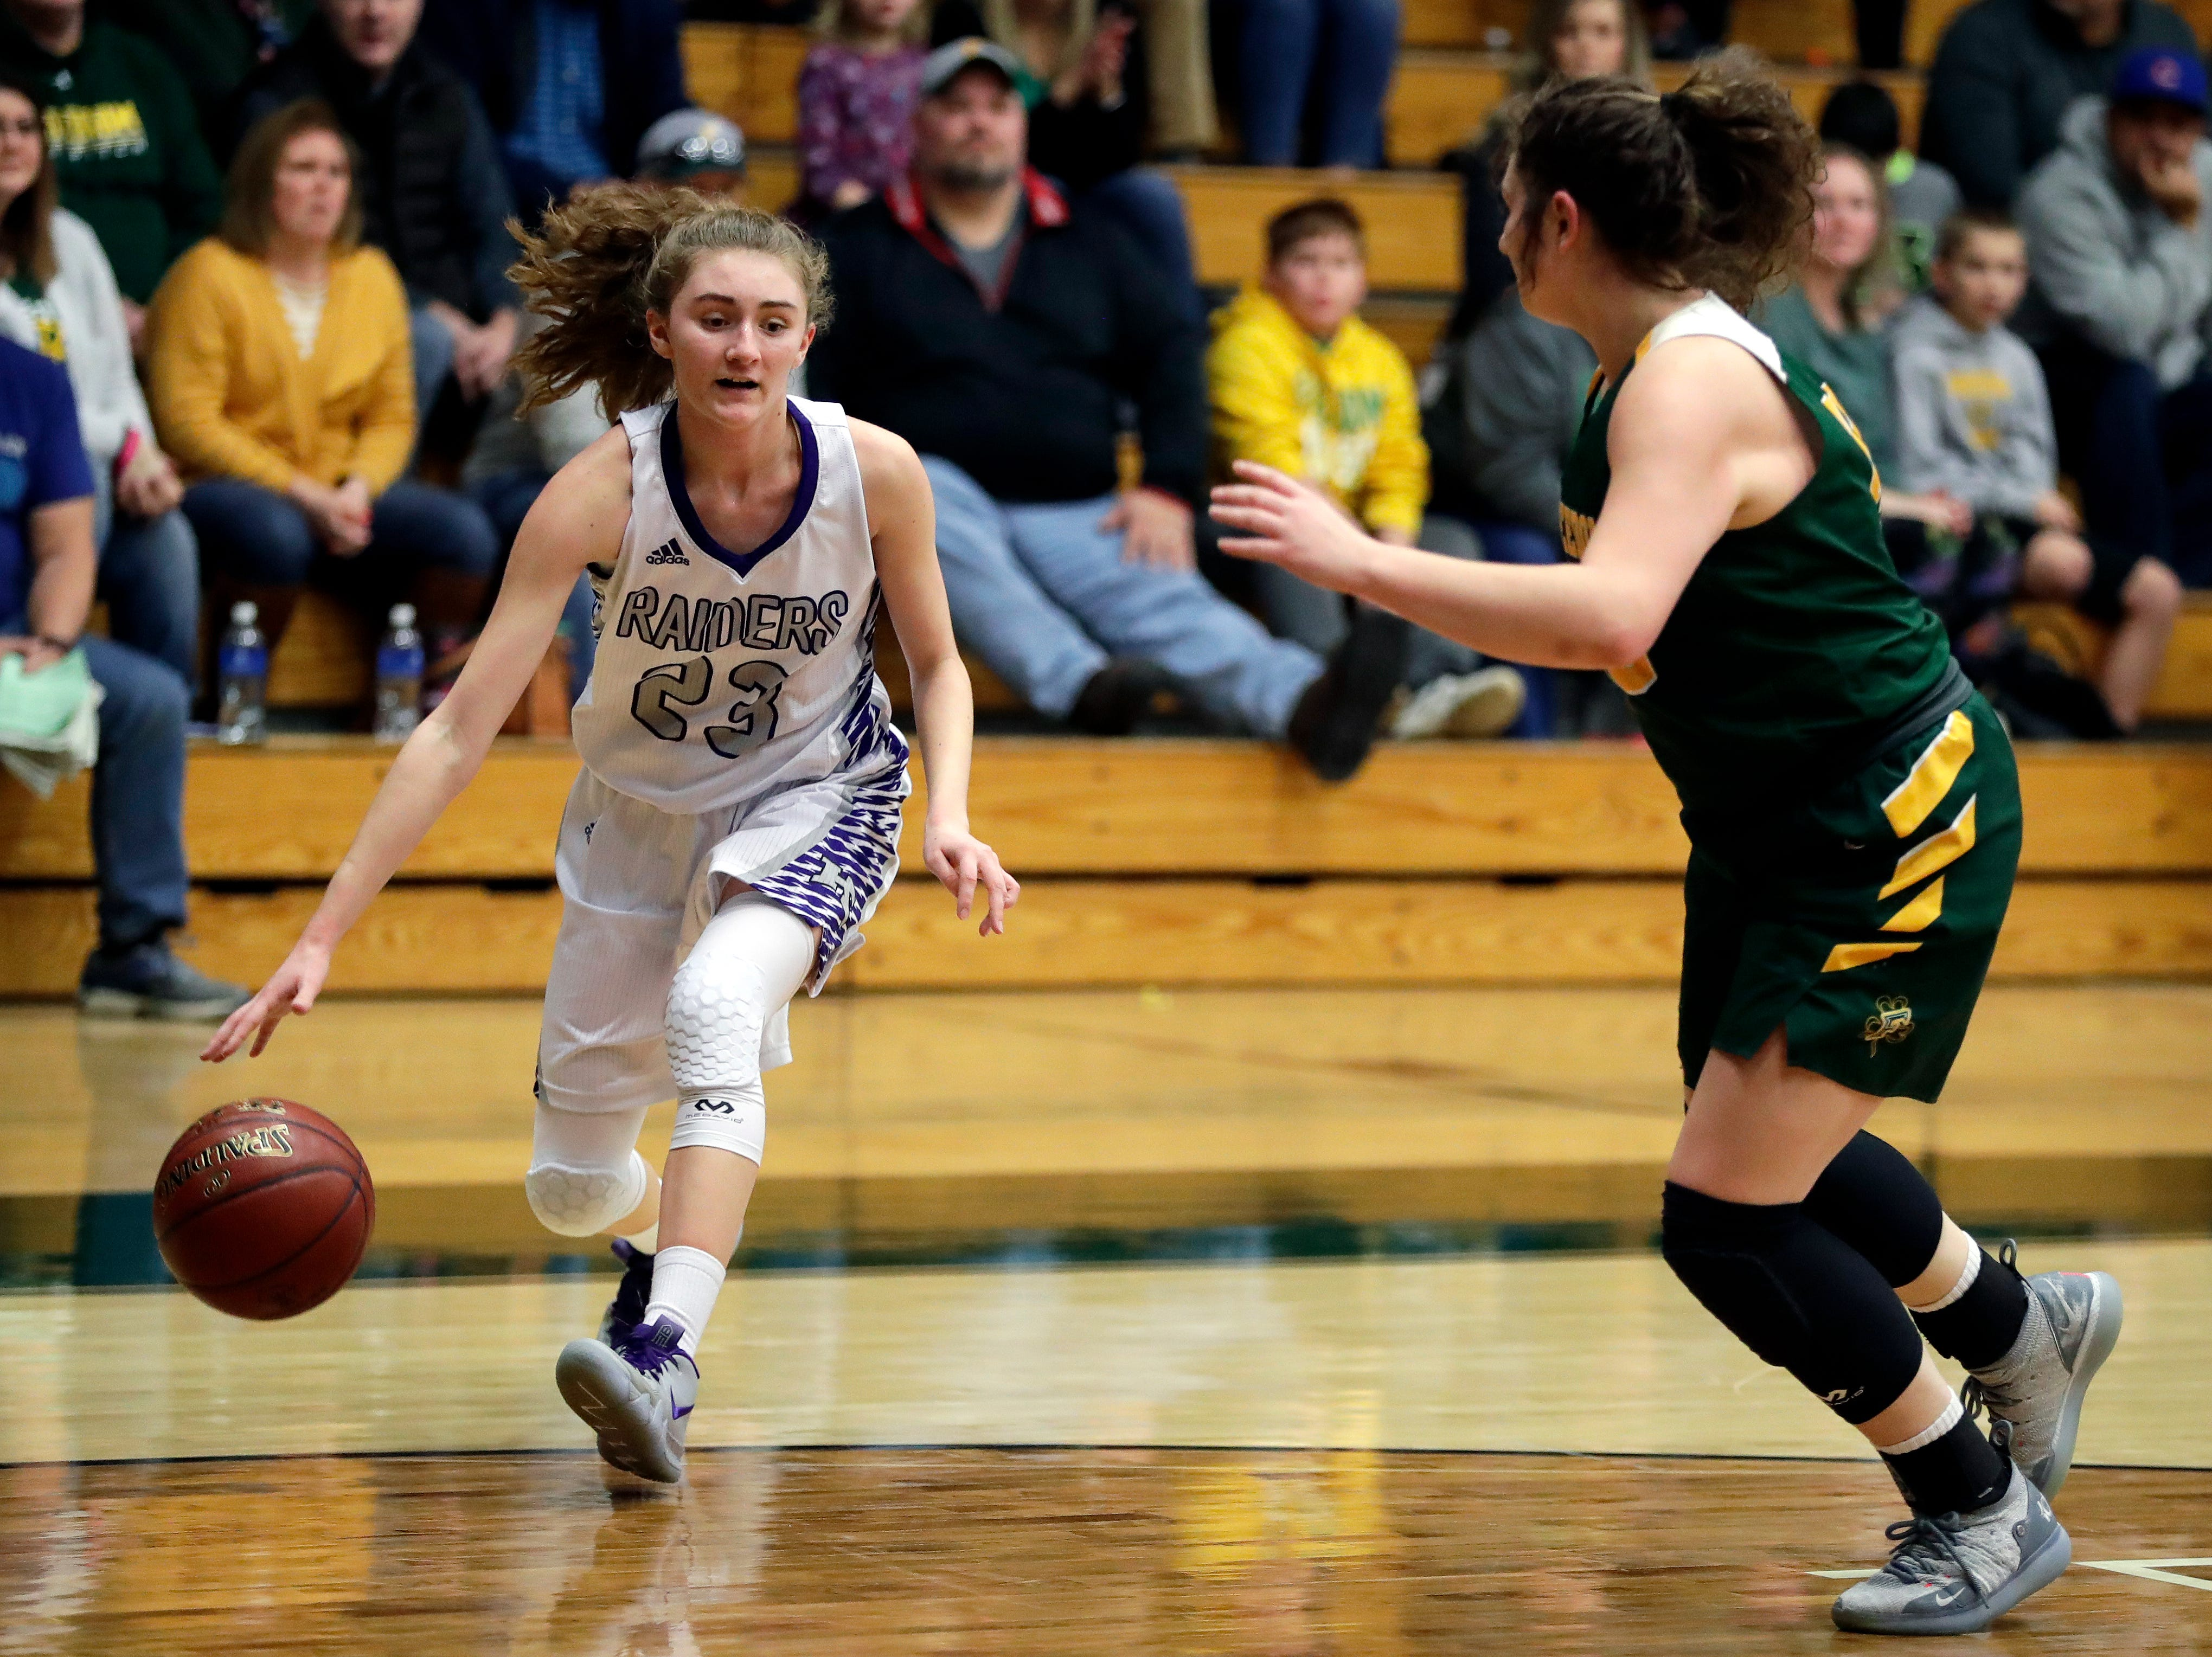 Kiel's Jocelyn April (23) tries to get past an opponent during a WIAA Division 3 girls basketball sectional championship against Freedom held March 2, 2019 at Ashwaubenon High School.